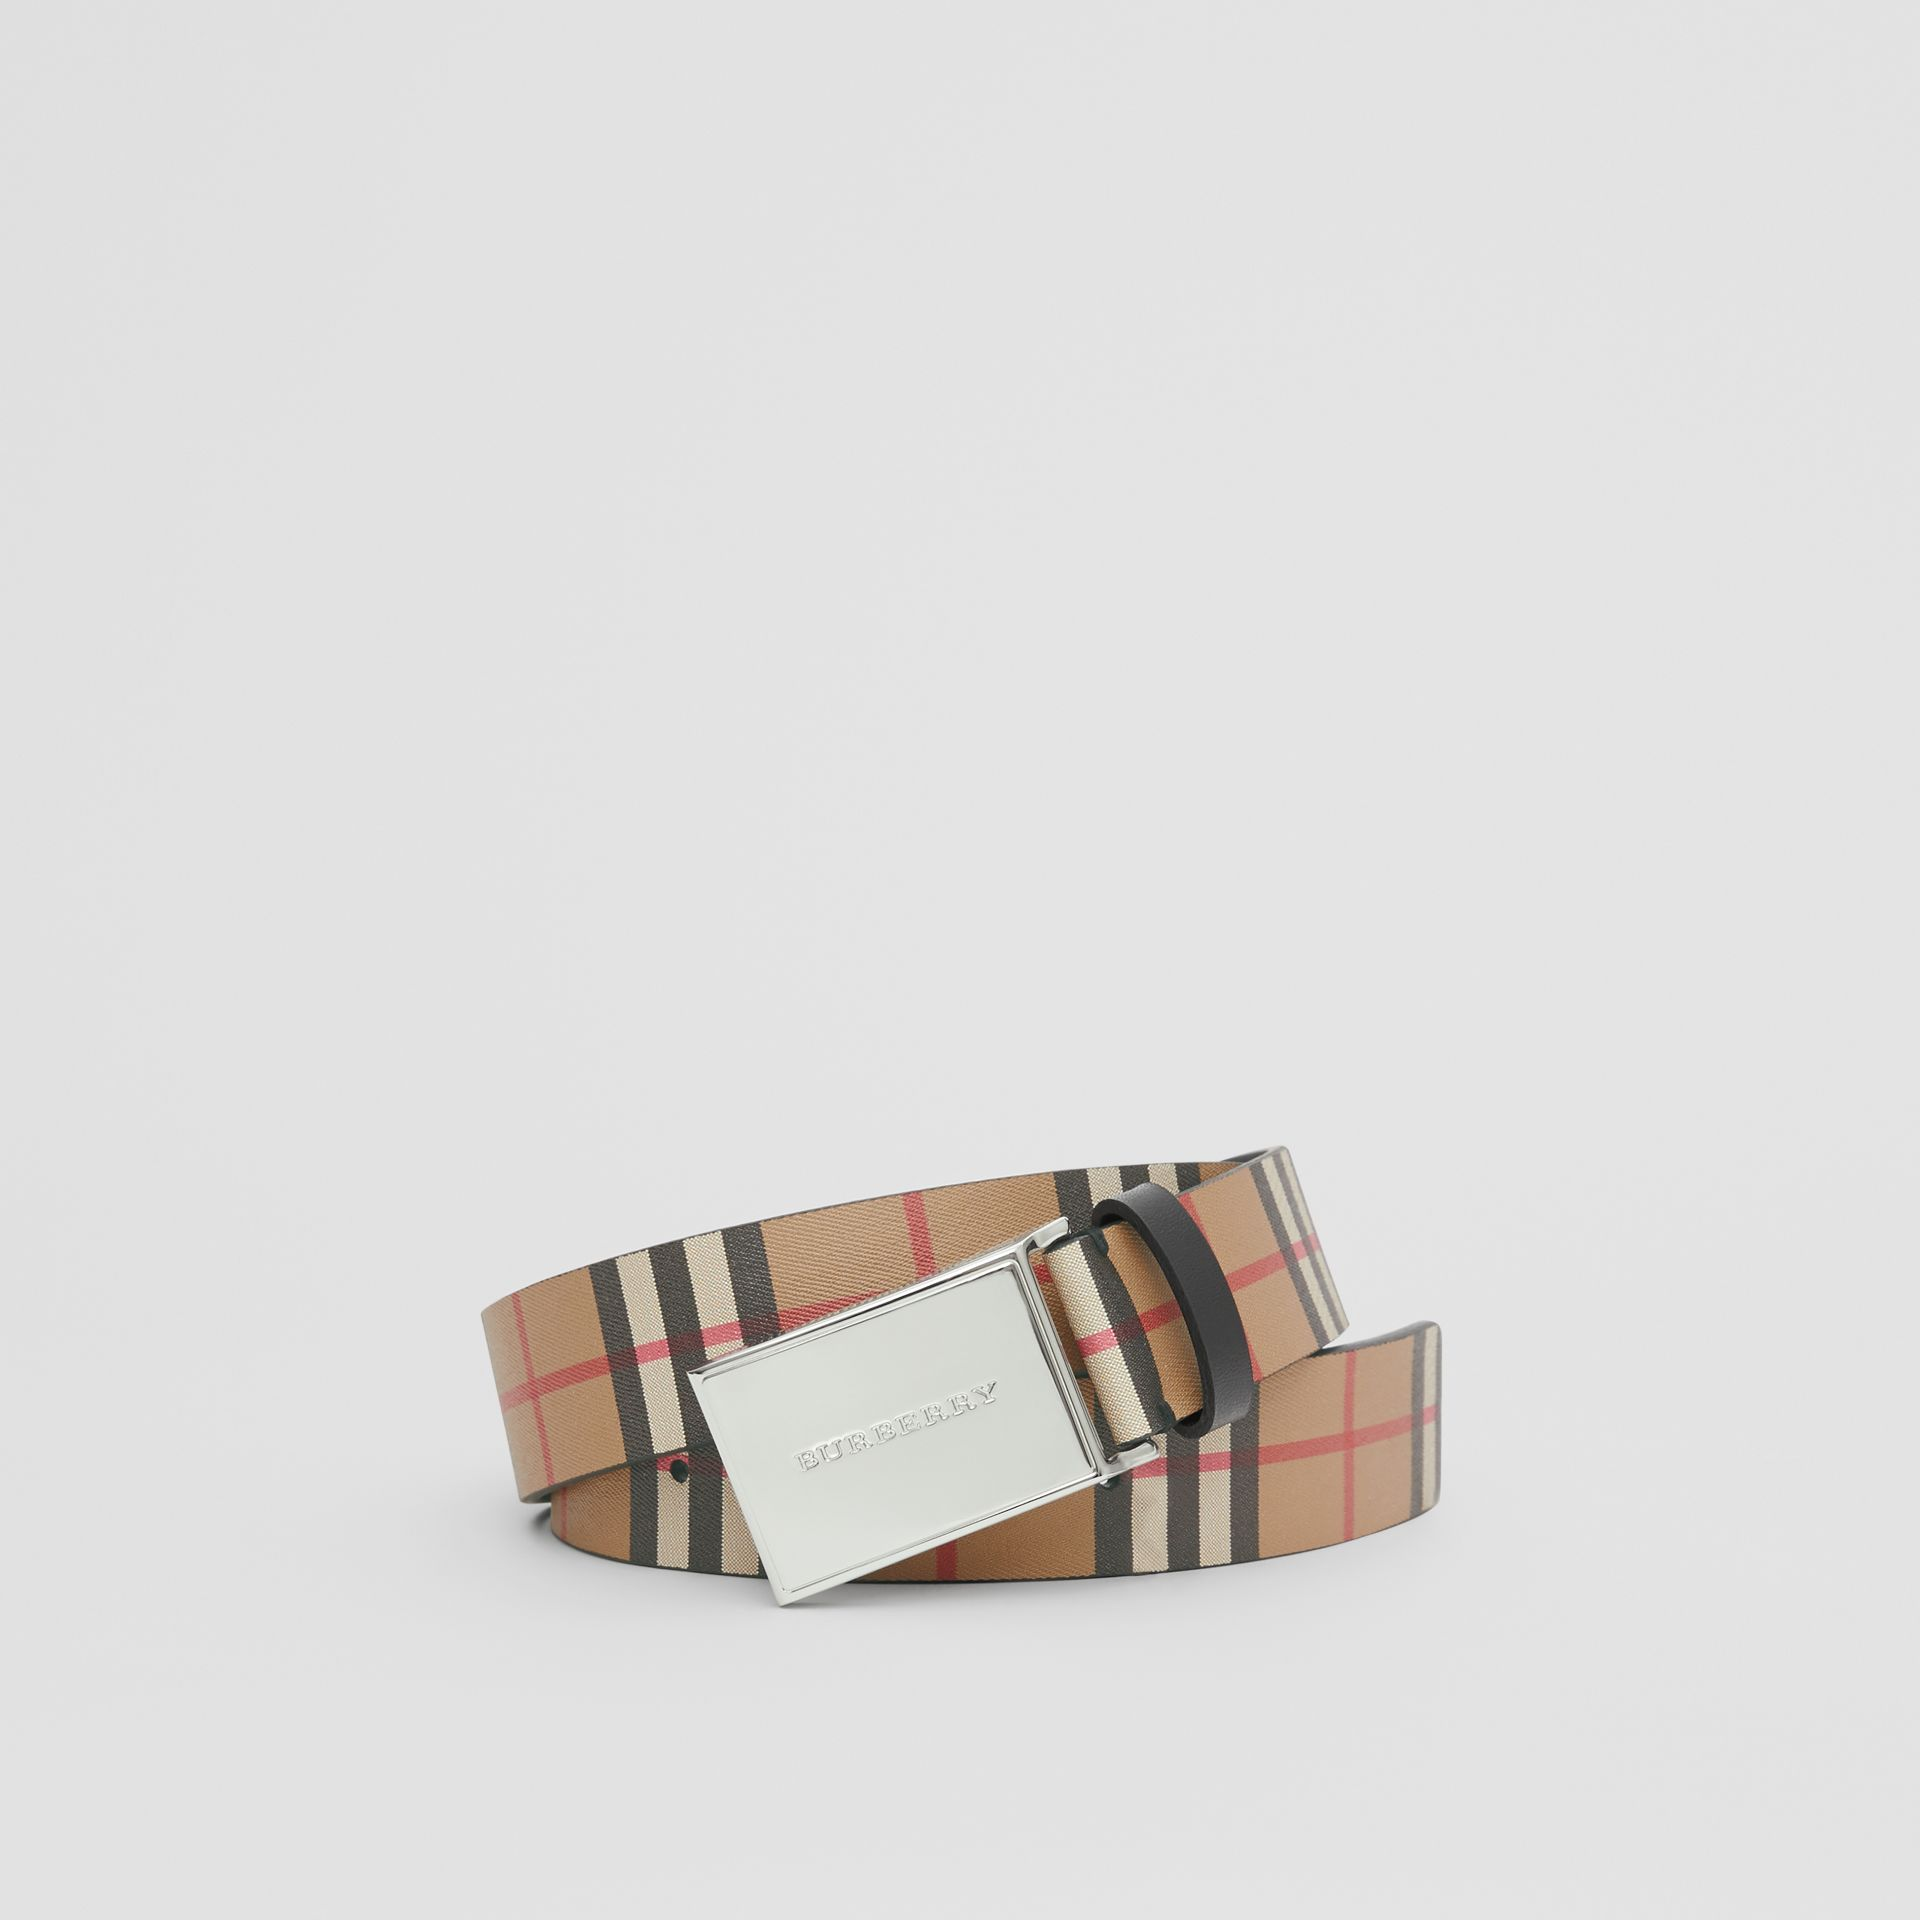 Plaque Buckle Vintage Check Leather Belt in Black - Men | Burberry - gallery image 0